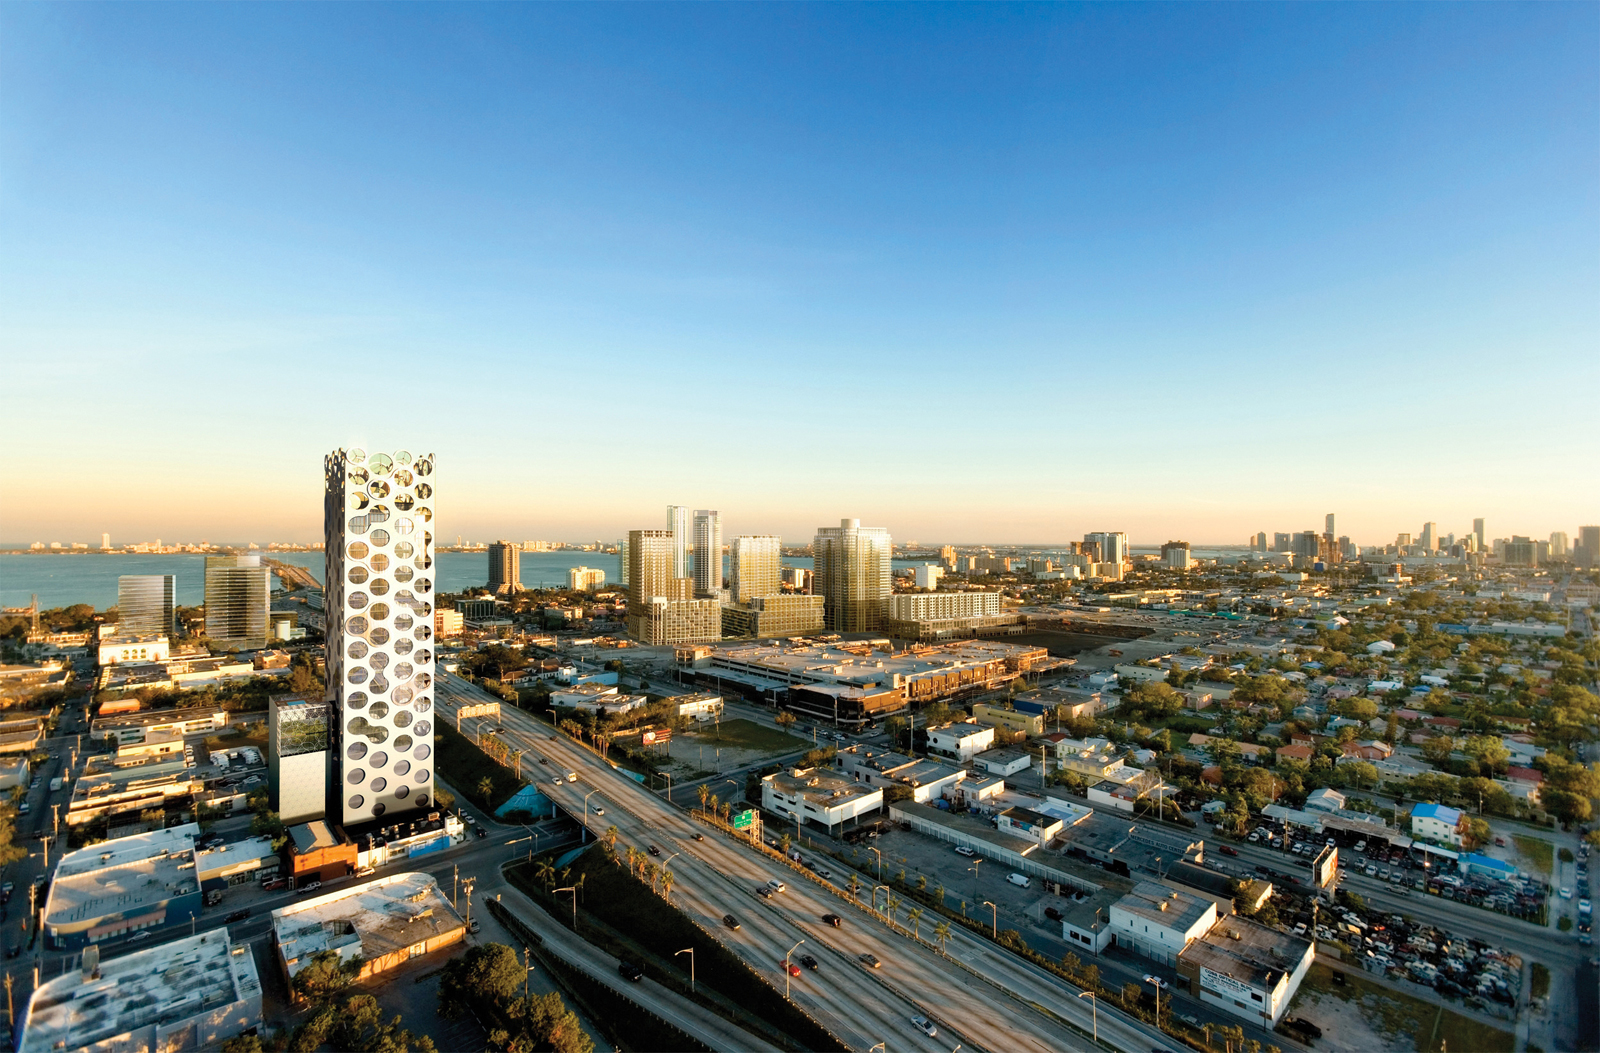 The COR condo tower in Miami features a score of circular wind turbines.